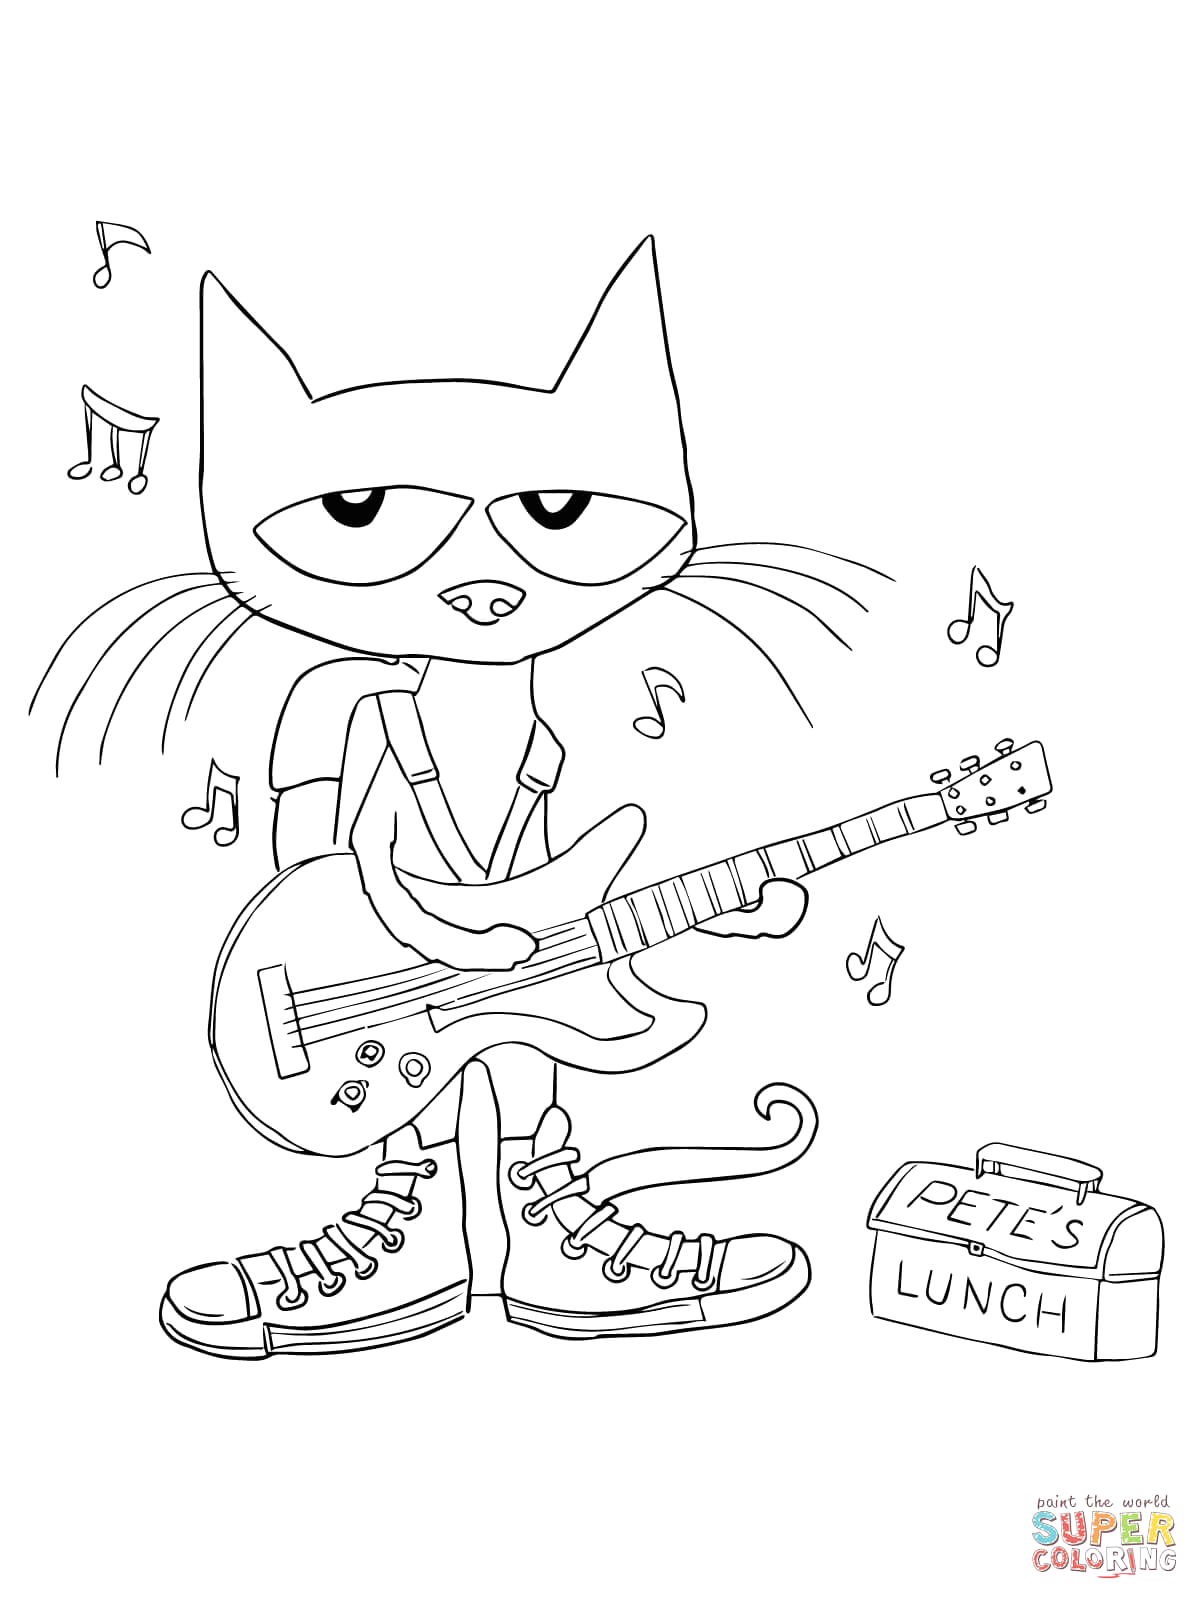 Pete the Cat Rocking In My School Shoes Coloring Page Pete the Cat Rockin In My Schol Shoes Quotes Quotesgram